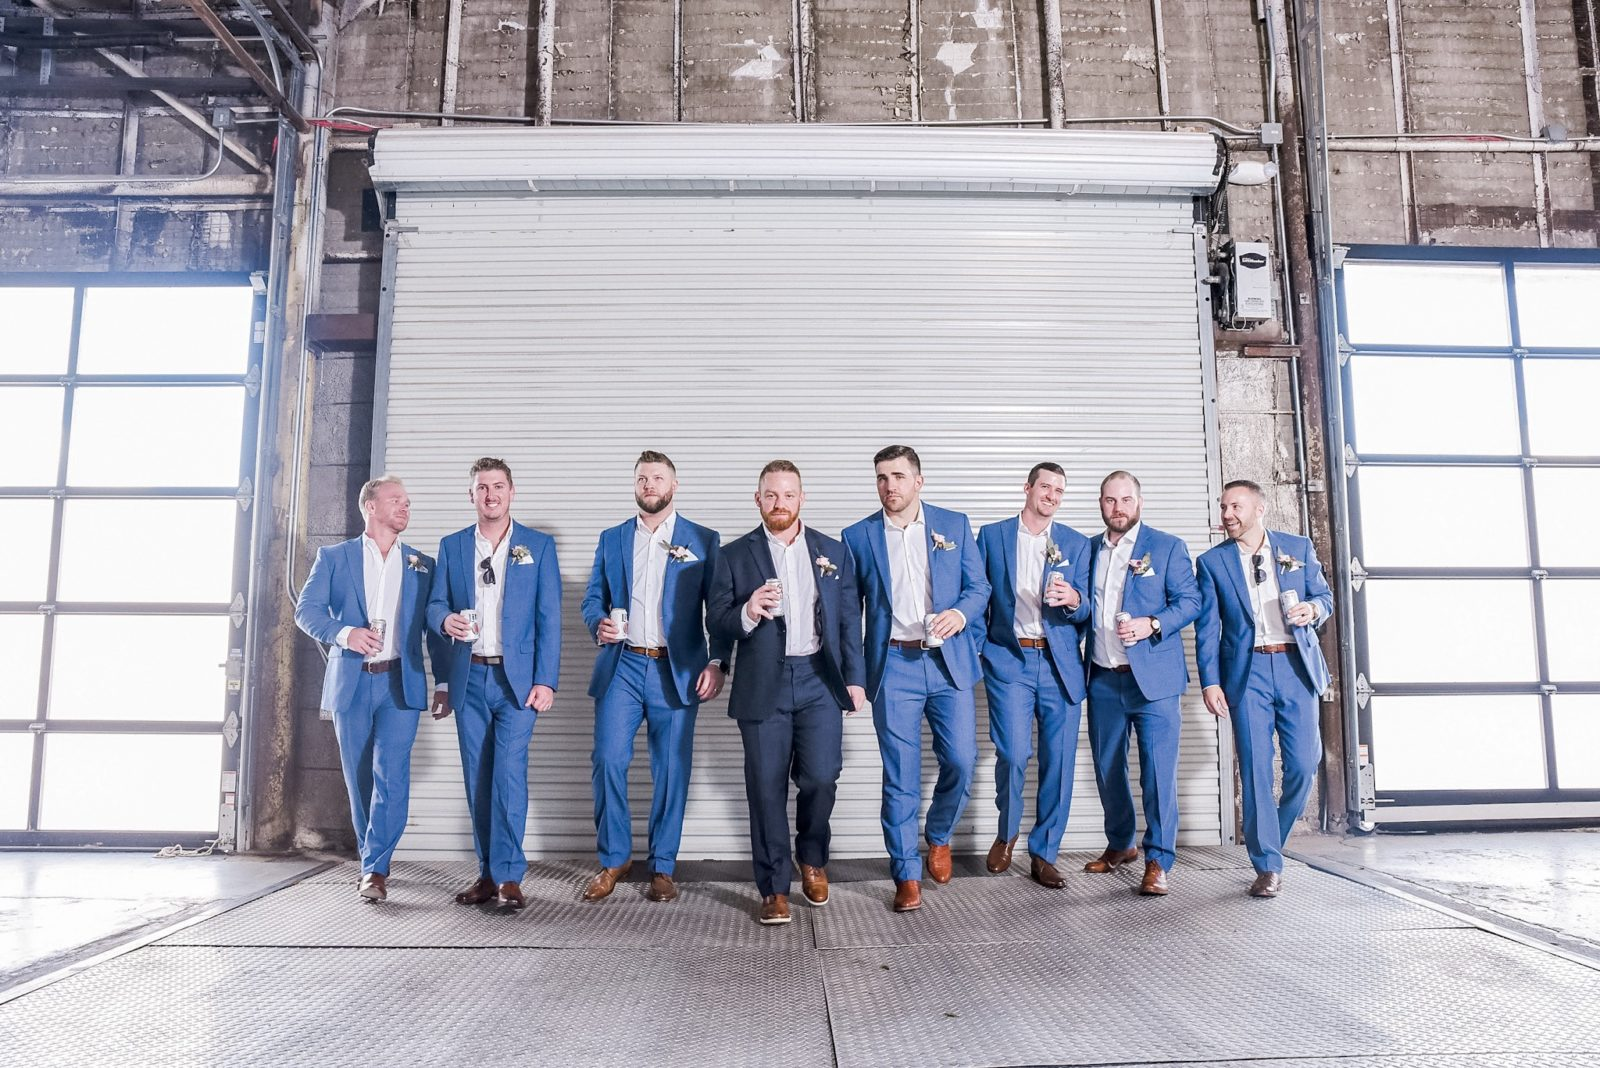 Blue groom and groomsmen wedding tuxedo